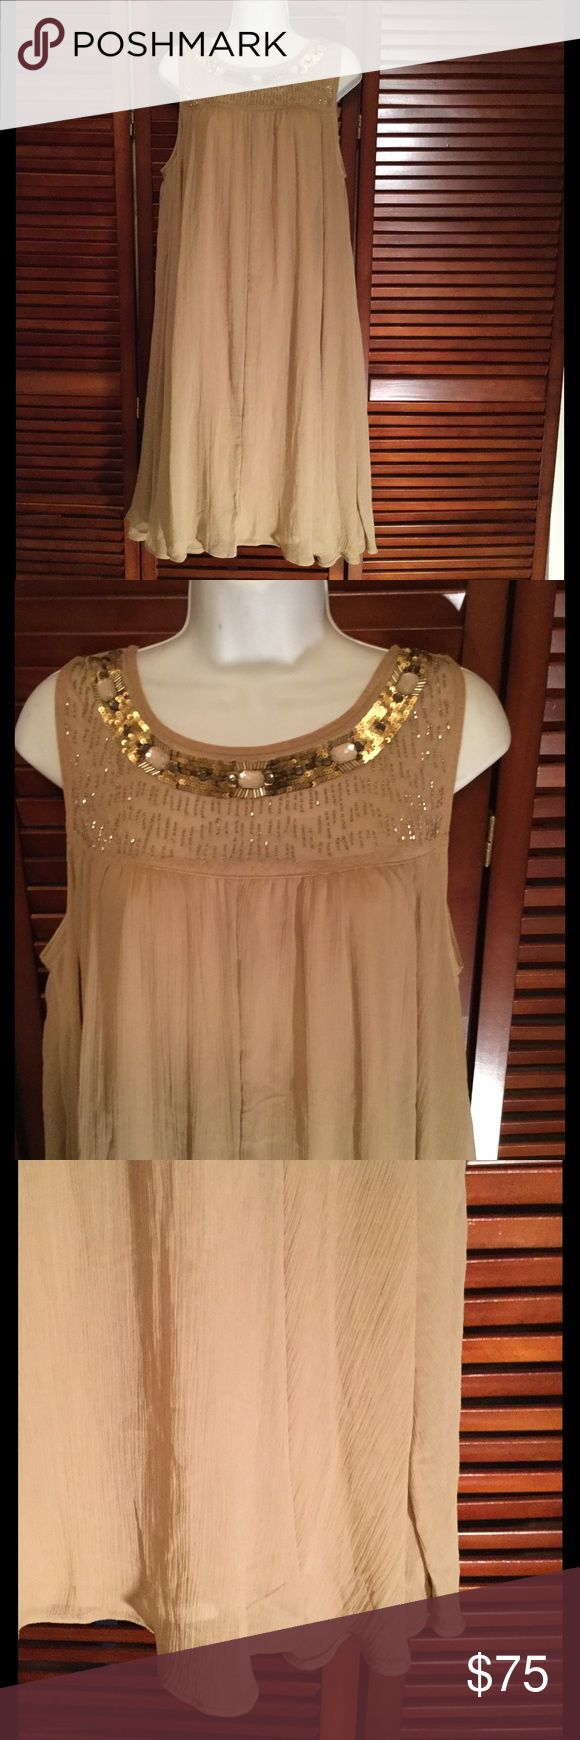 Gold plus size dress with beading and sequins Gold shift dress with beautiful beads and sequins around the neck. This dress is fully lined with a zipper down the back. Never been worn. Lane Bryant Dresses Midi